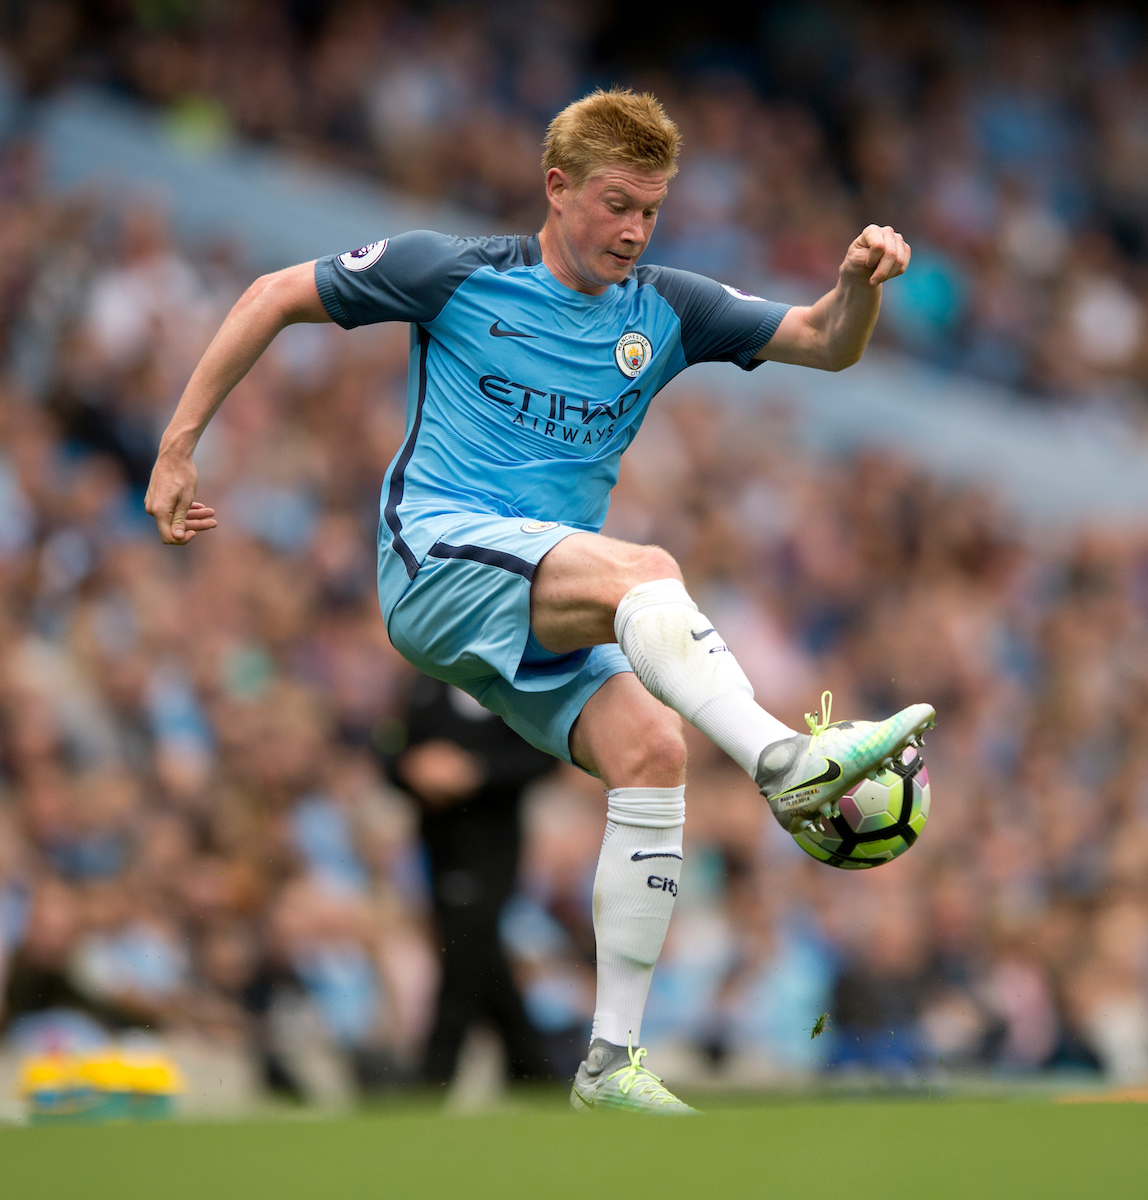 Kevin De Bruyne of Manchester City brings the ball under control during the Premier League match at the Etihad Stadium, Manchester Picture by Russell Hart/Focus Images Ltd 07791 688 420 28/08/2016